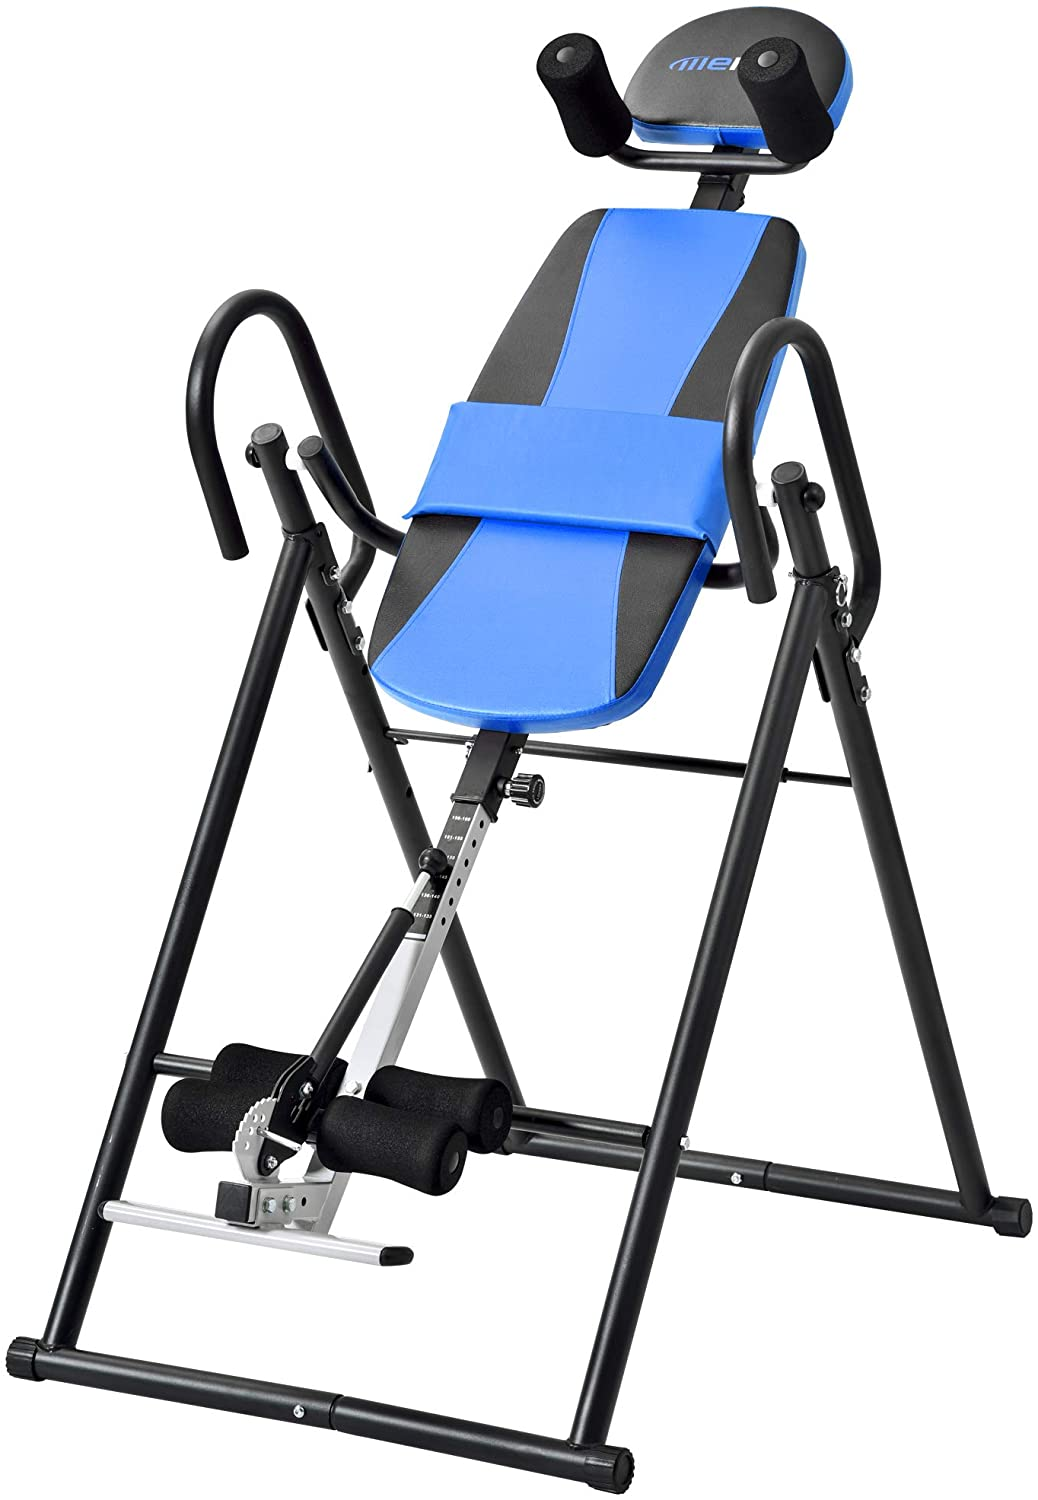 HYD-EQUI Inversion Table